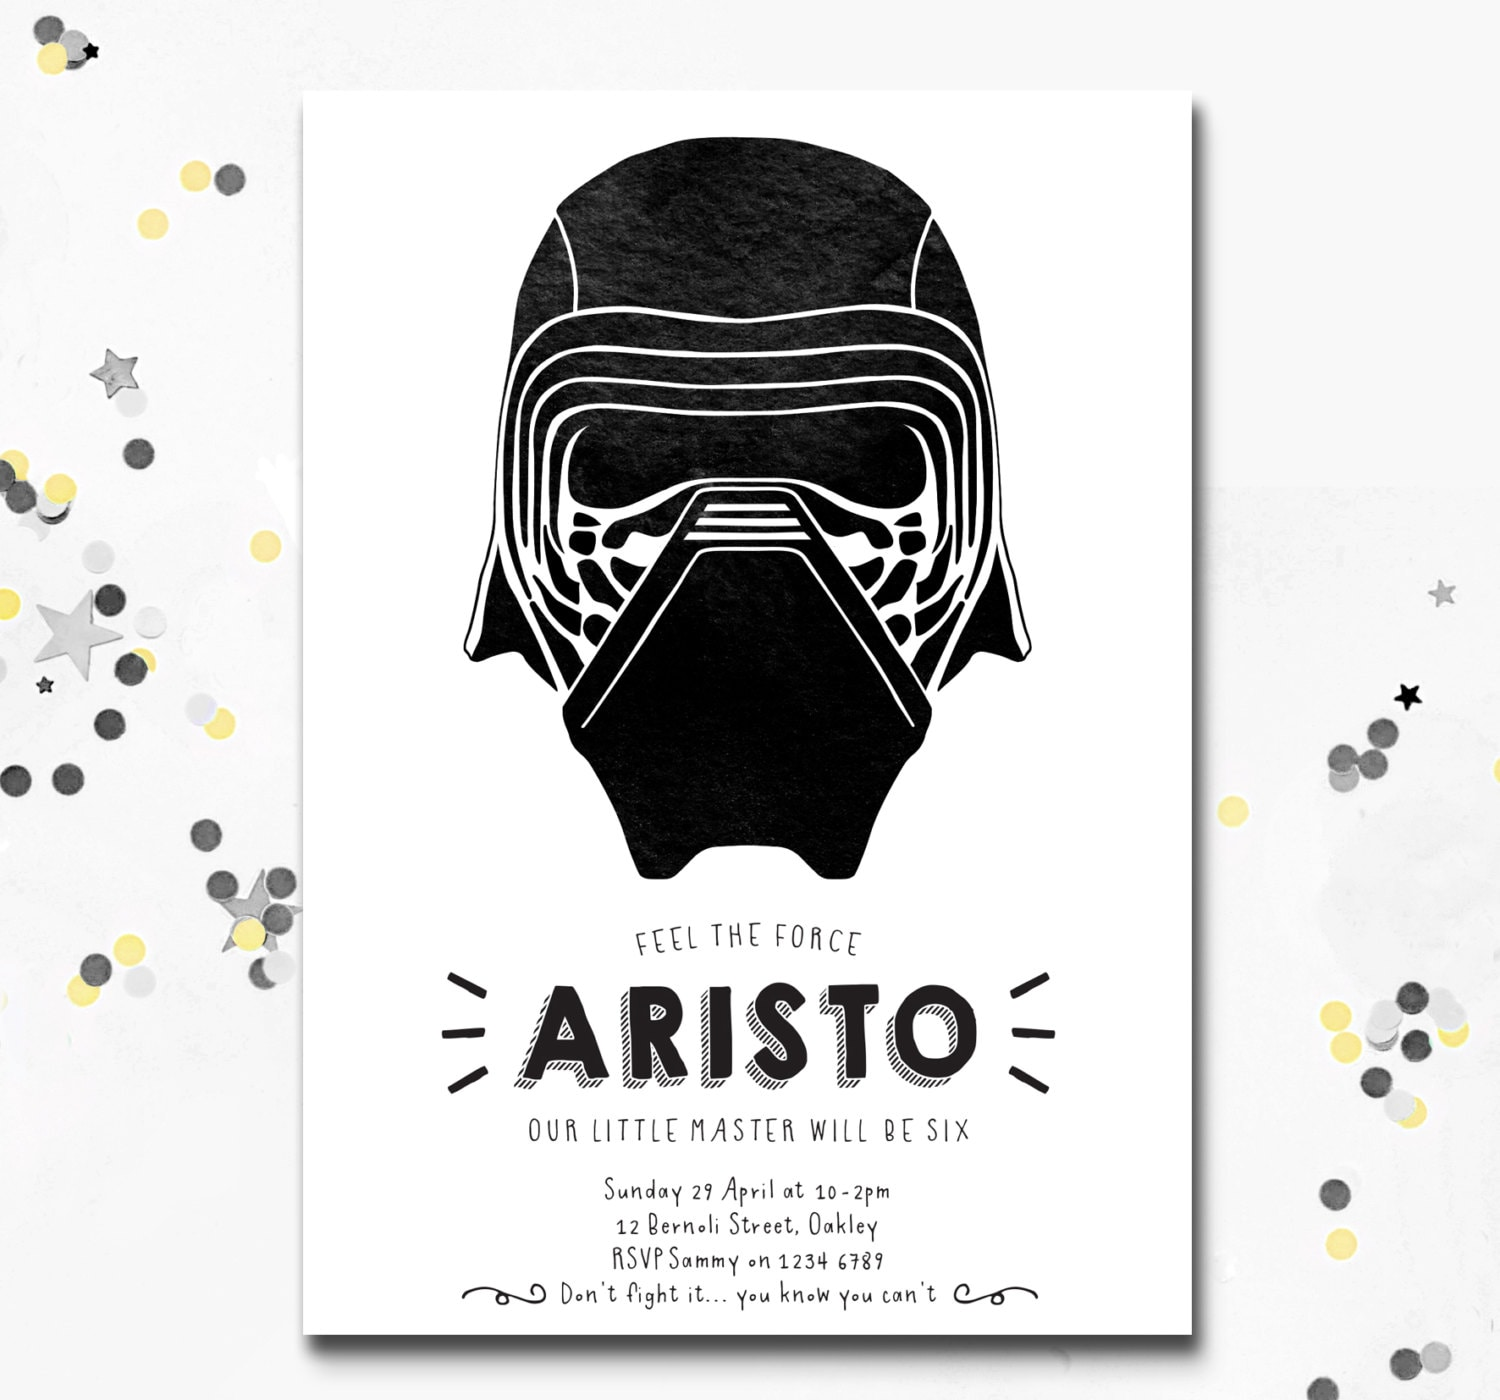 Kylo Ren Invitation Party Invite Star Wars Kylo Ren Birthday